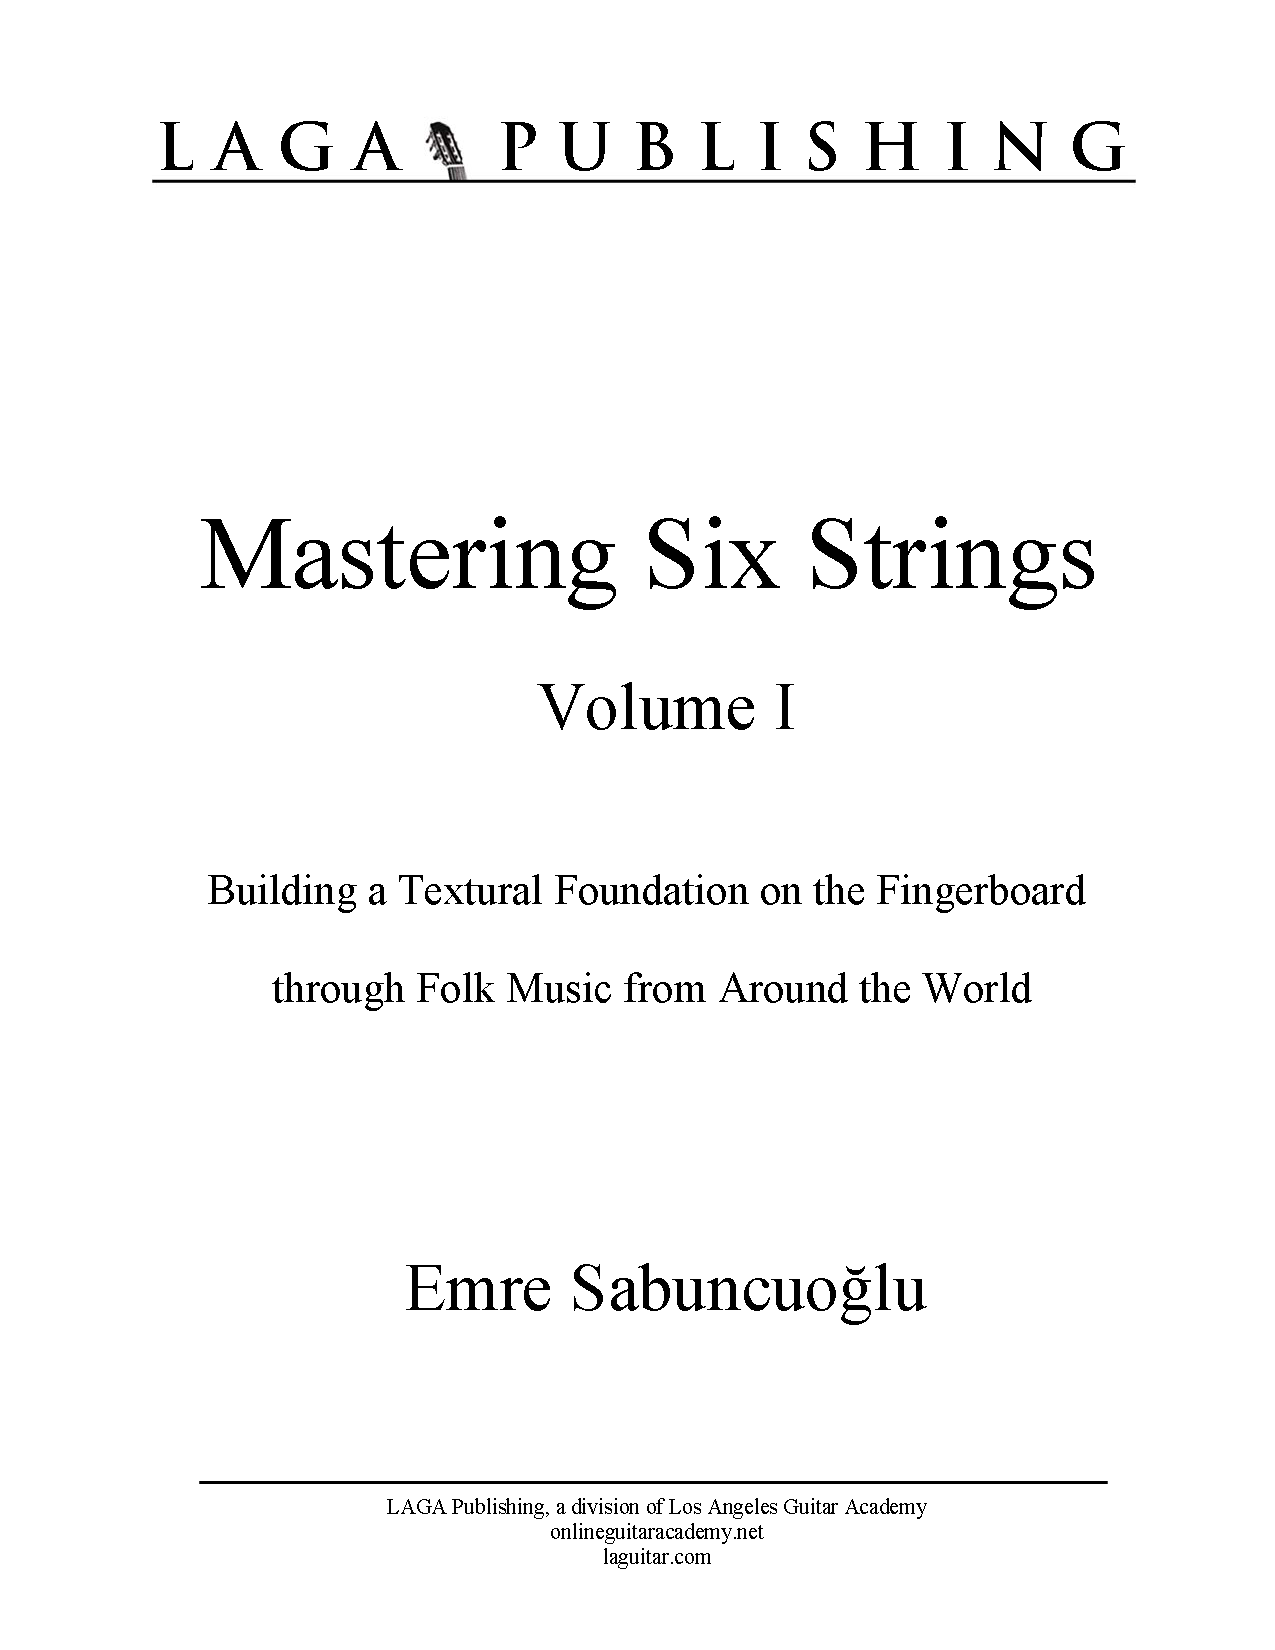 LAGA-Publishing--Mastering-Six-Strings-Vol-I